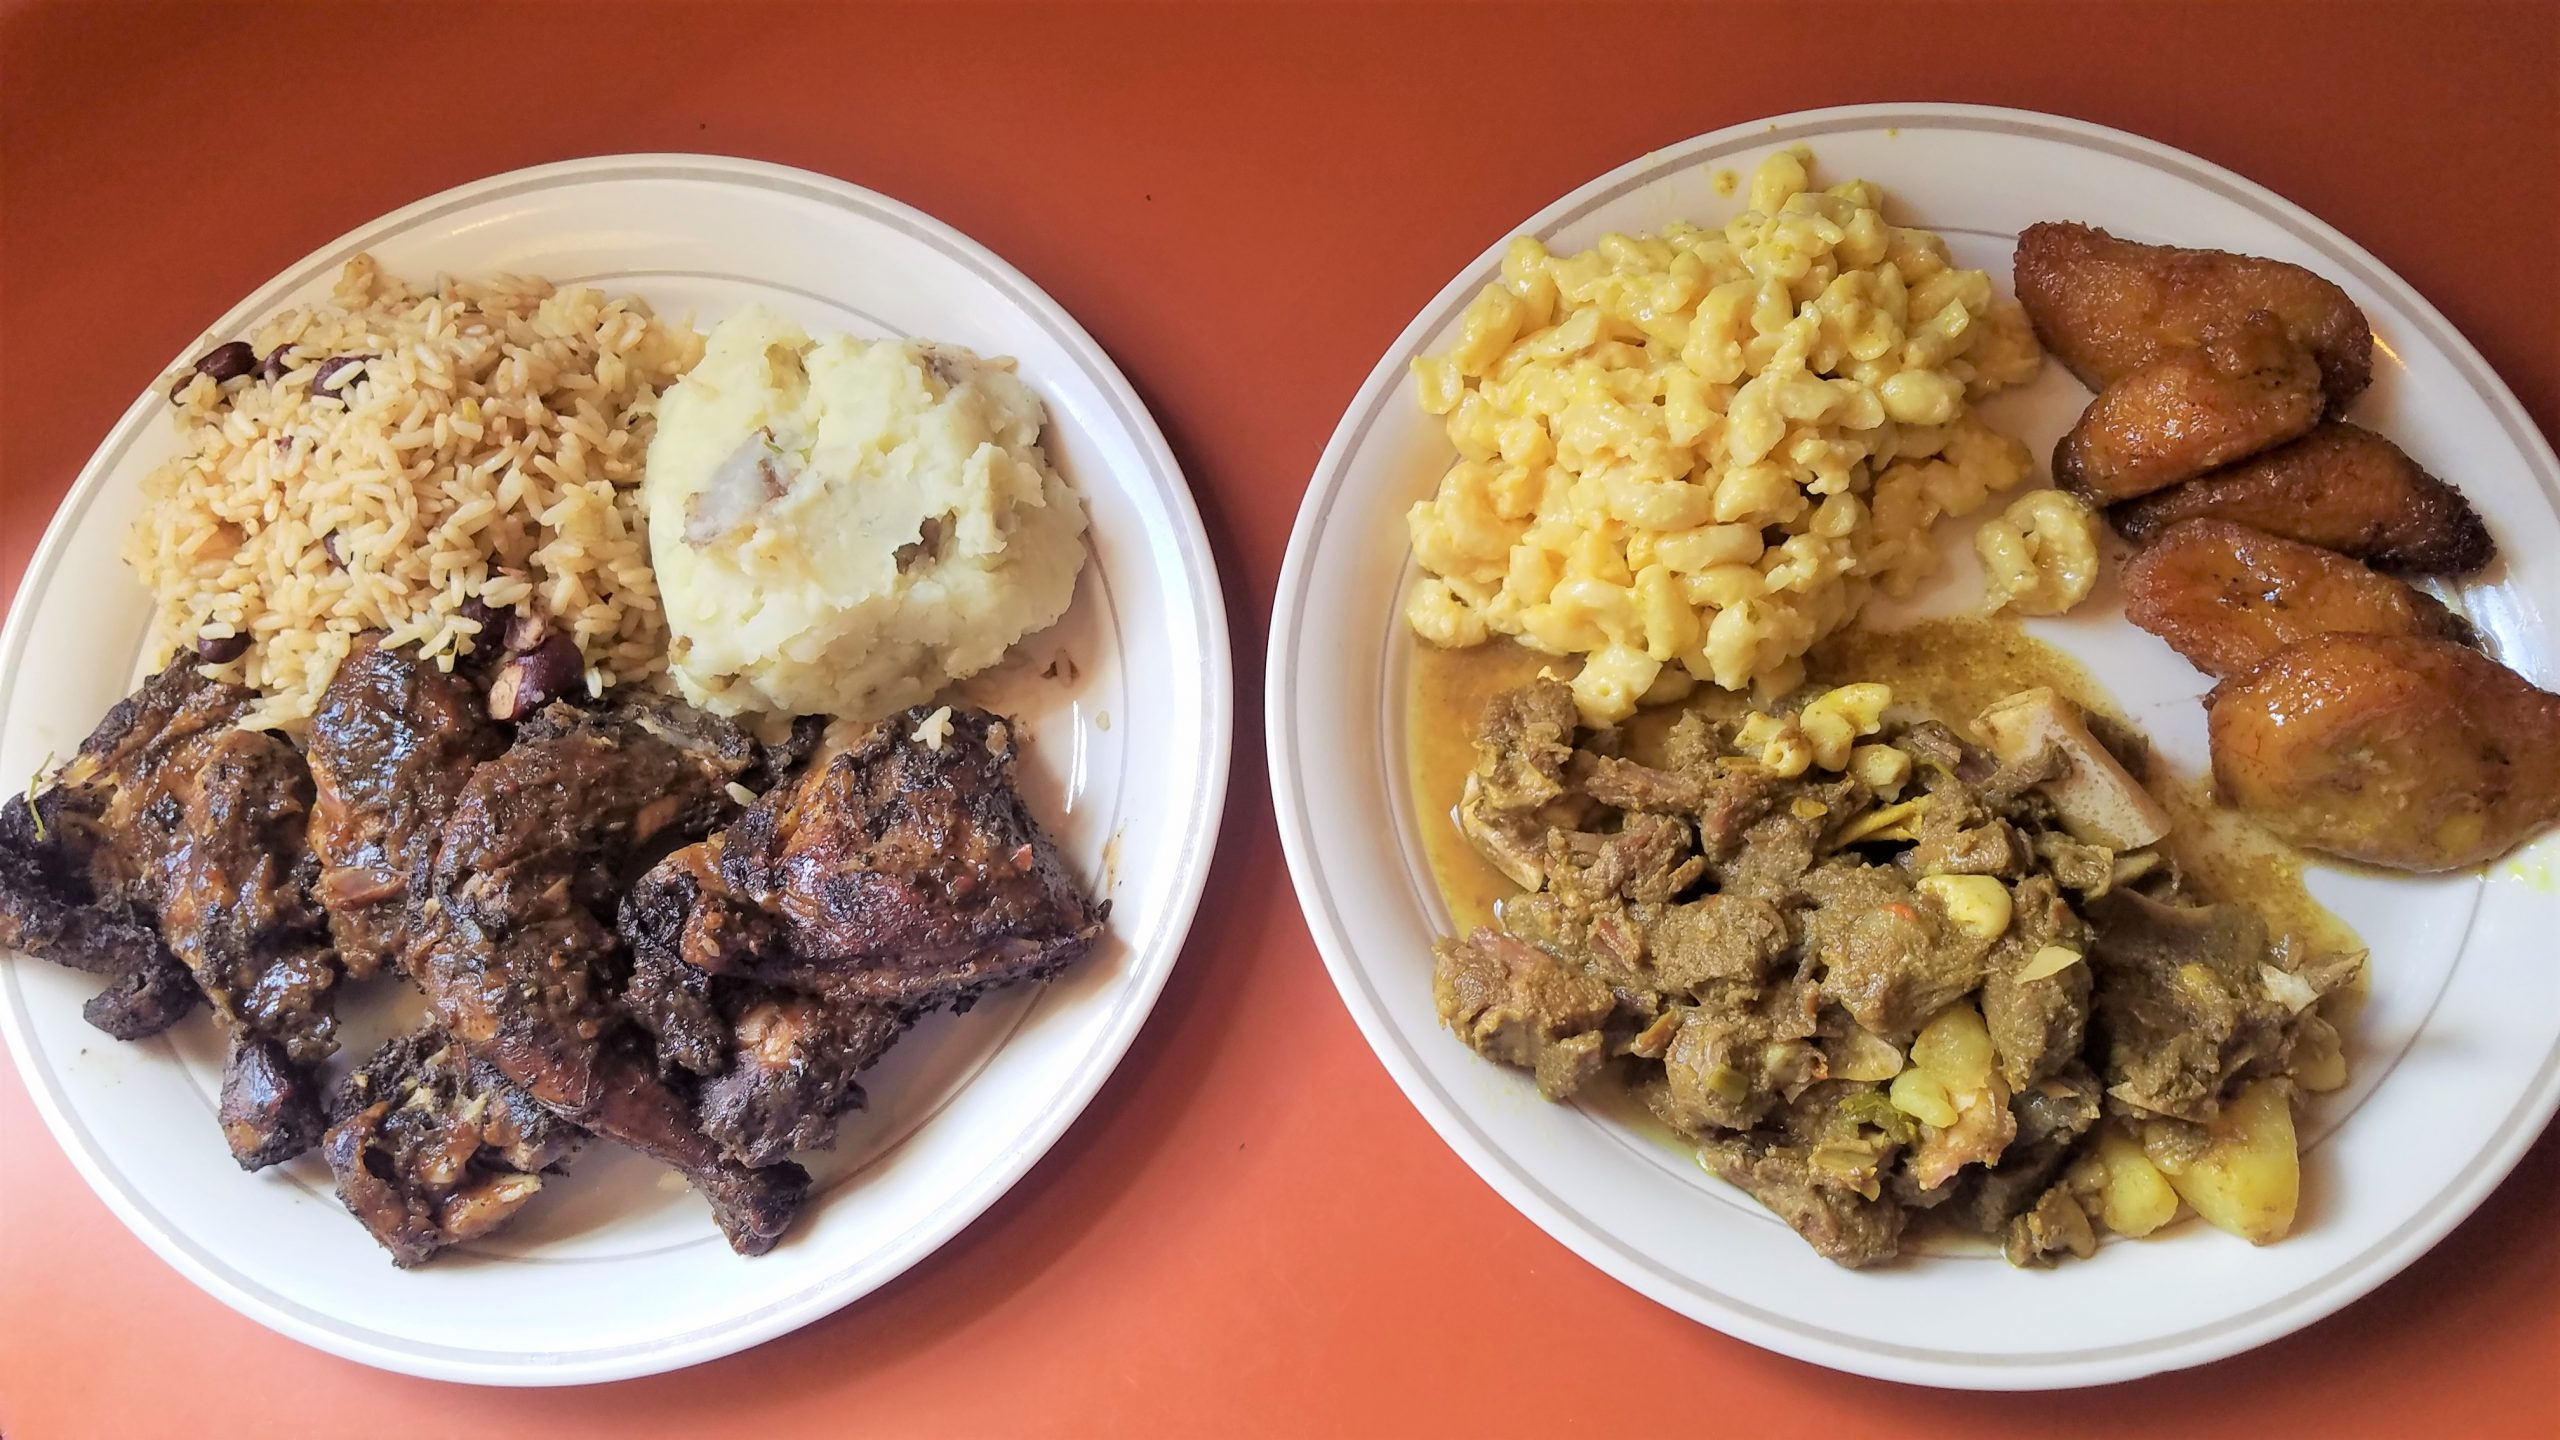 Jerk chicken with mashed potatoes, and beans and rice (l.); curried goat stew with mac and cheese, and friend plantains (r.). Takeout fare re-plated. (photo: Rick Handler)